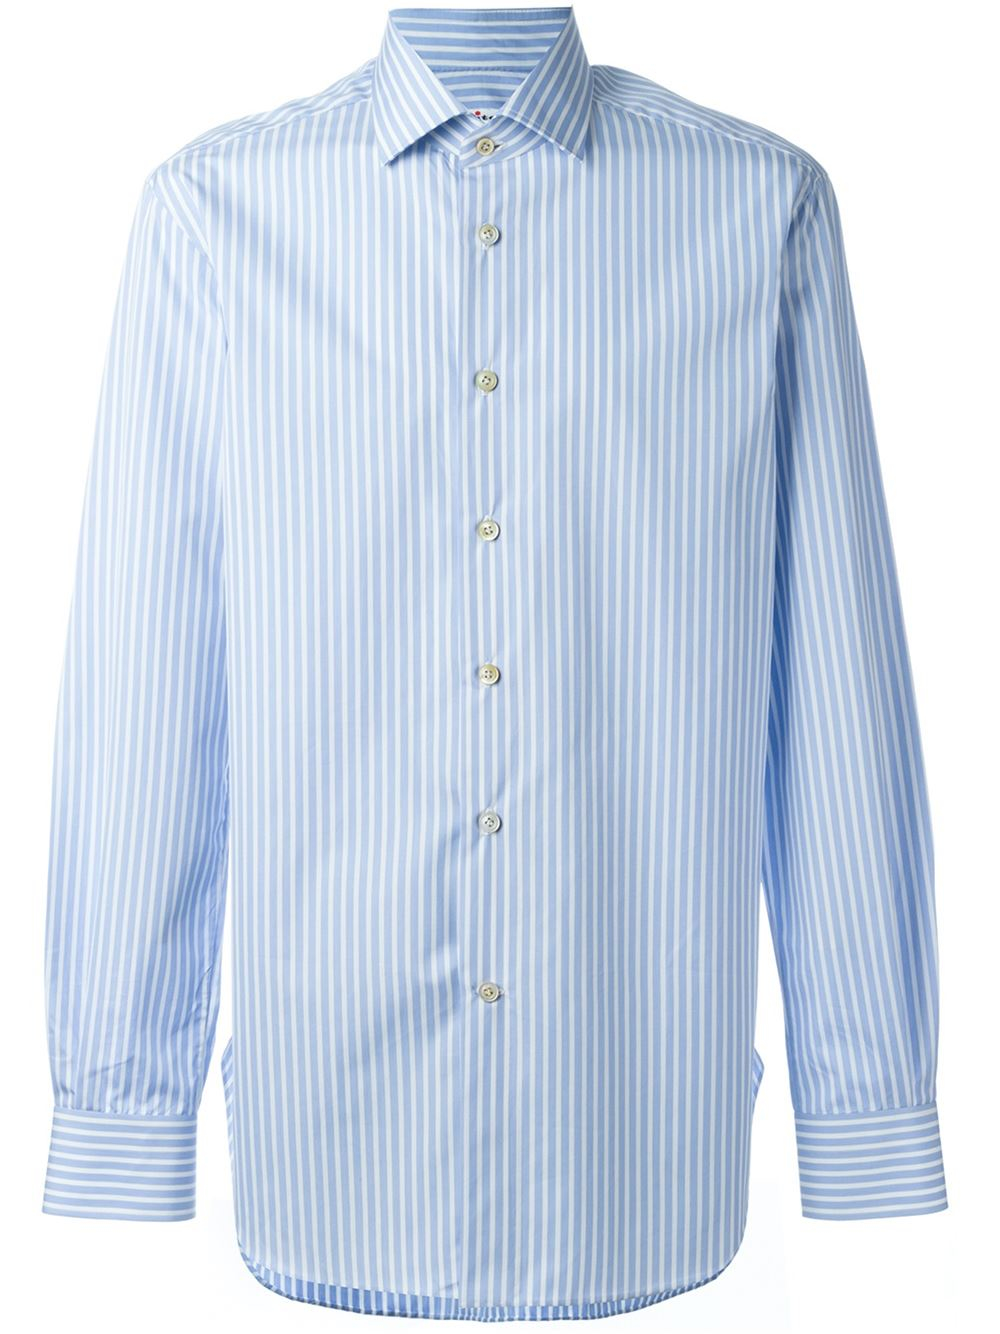 lyst kiton striped button down shirt in blue for men